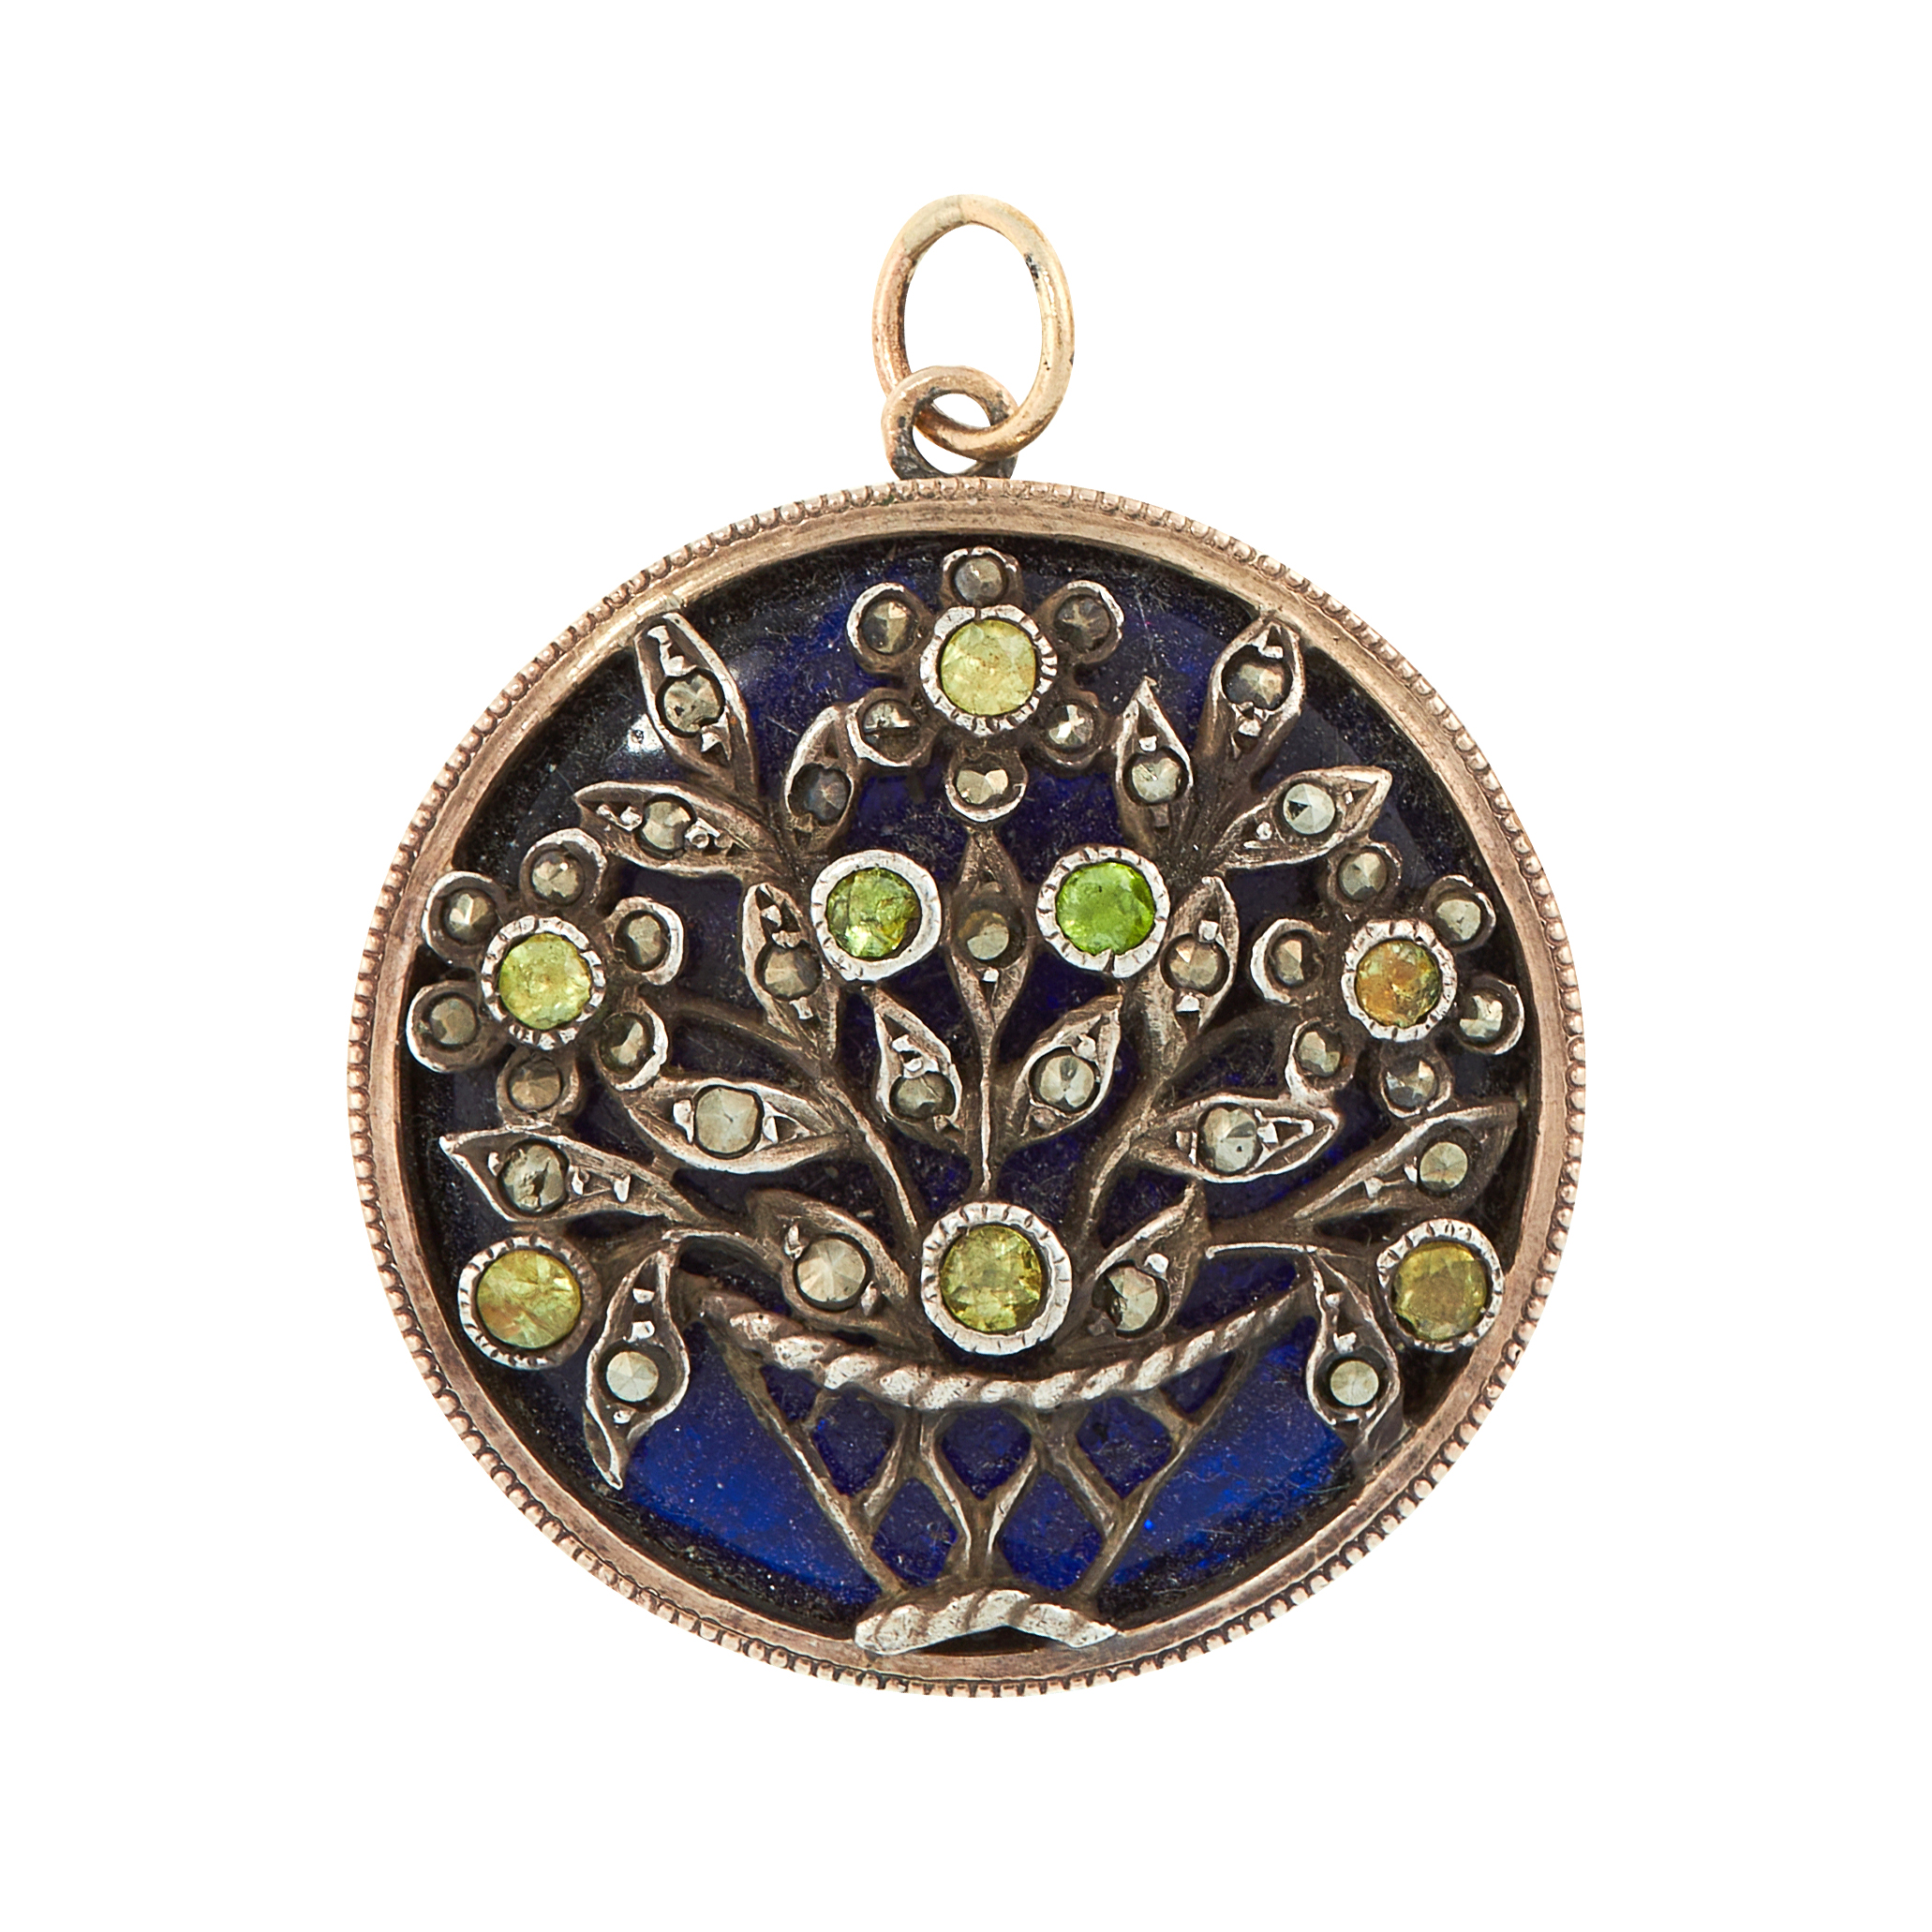 AN ANTIQUE PERIDOT AND BLUE GLASS PENDANT, CIRCA 1910 of circular design, set with a polished